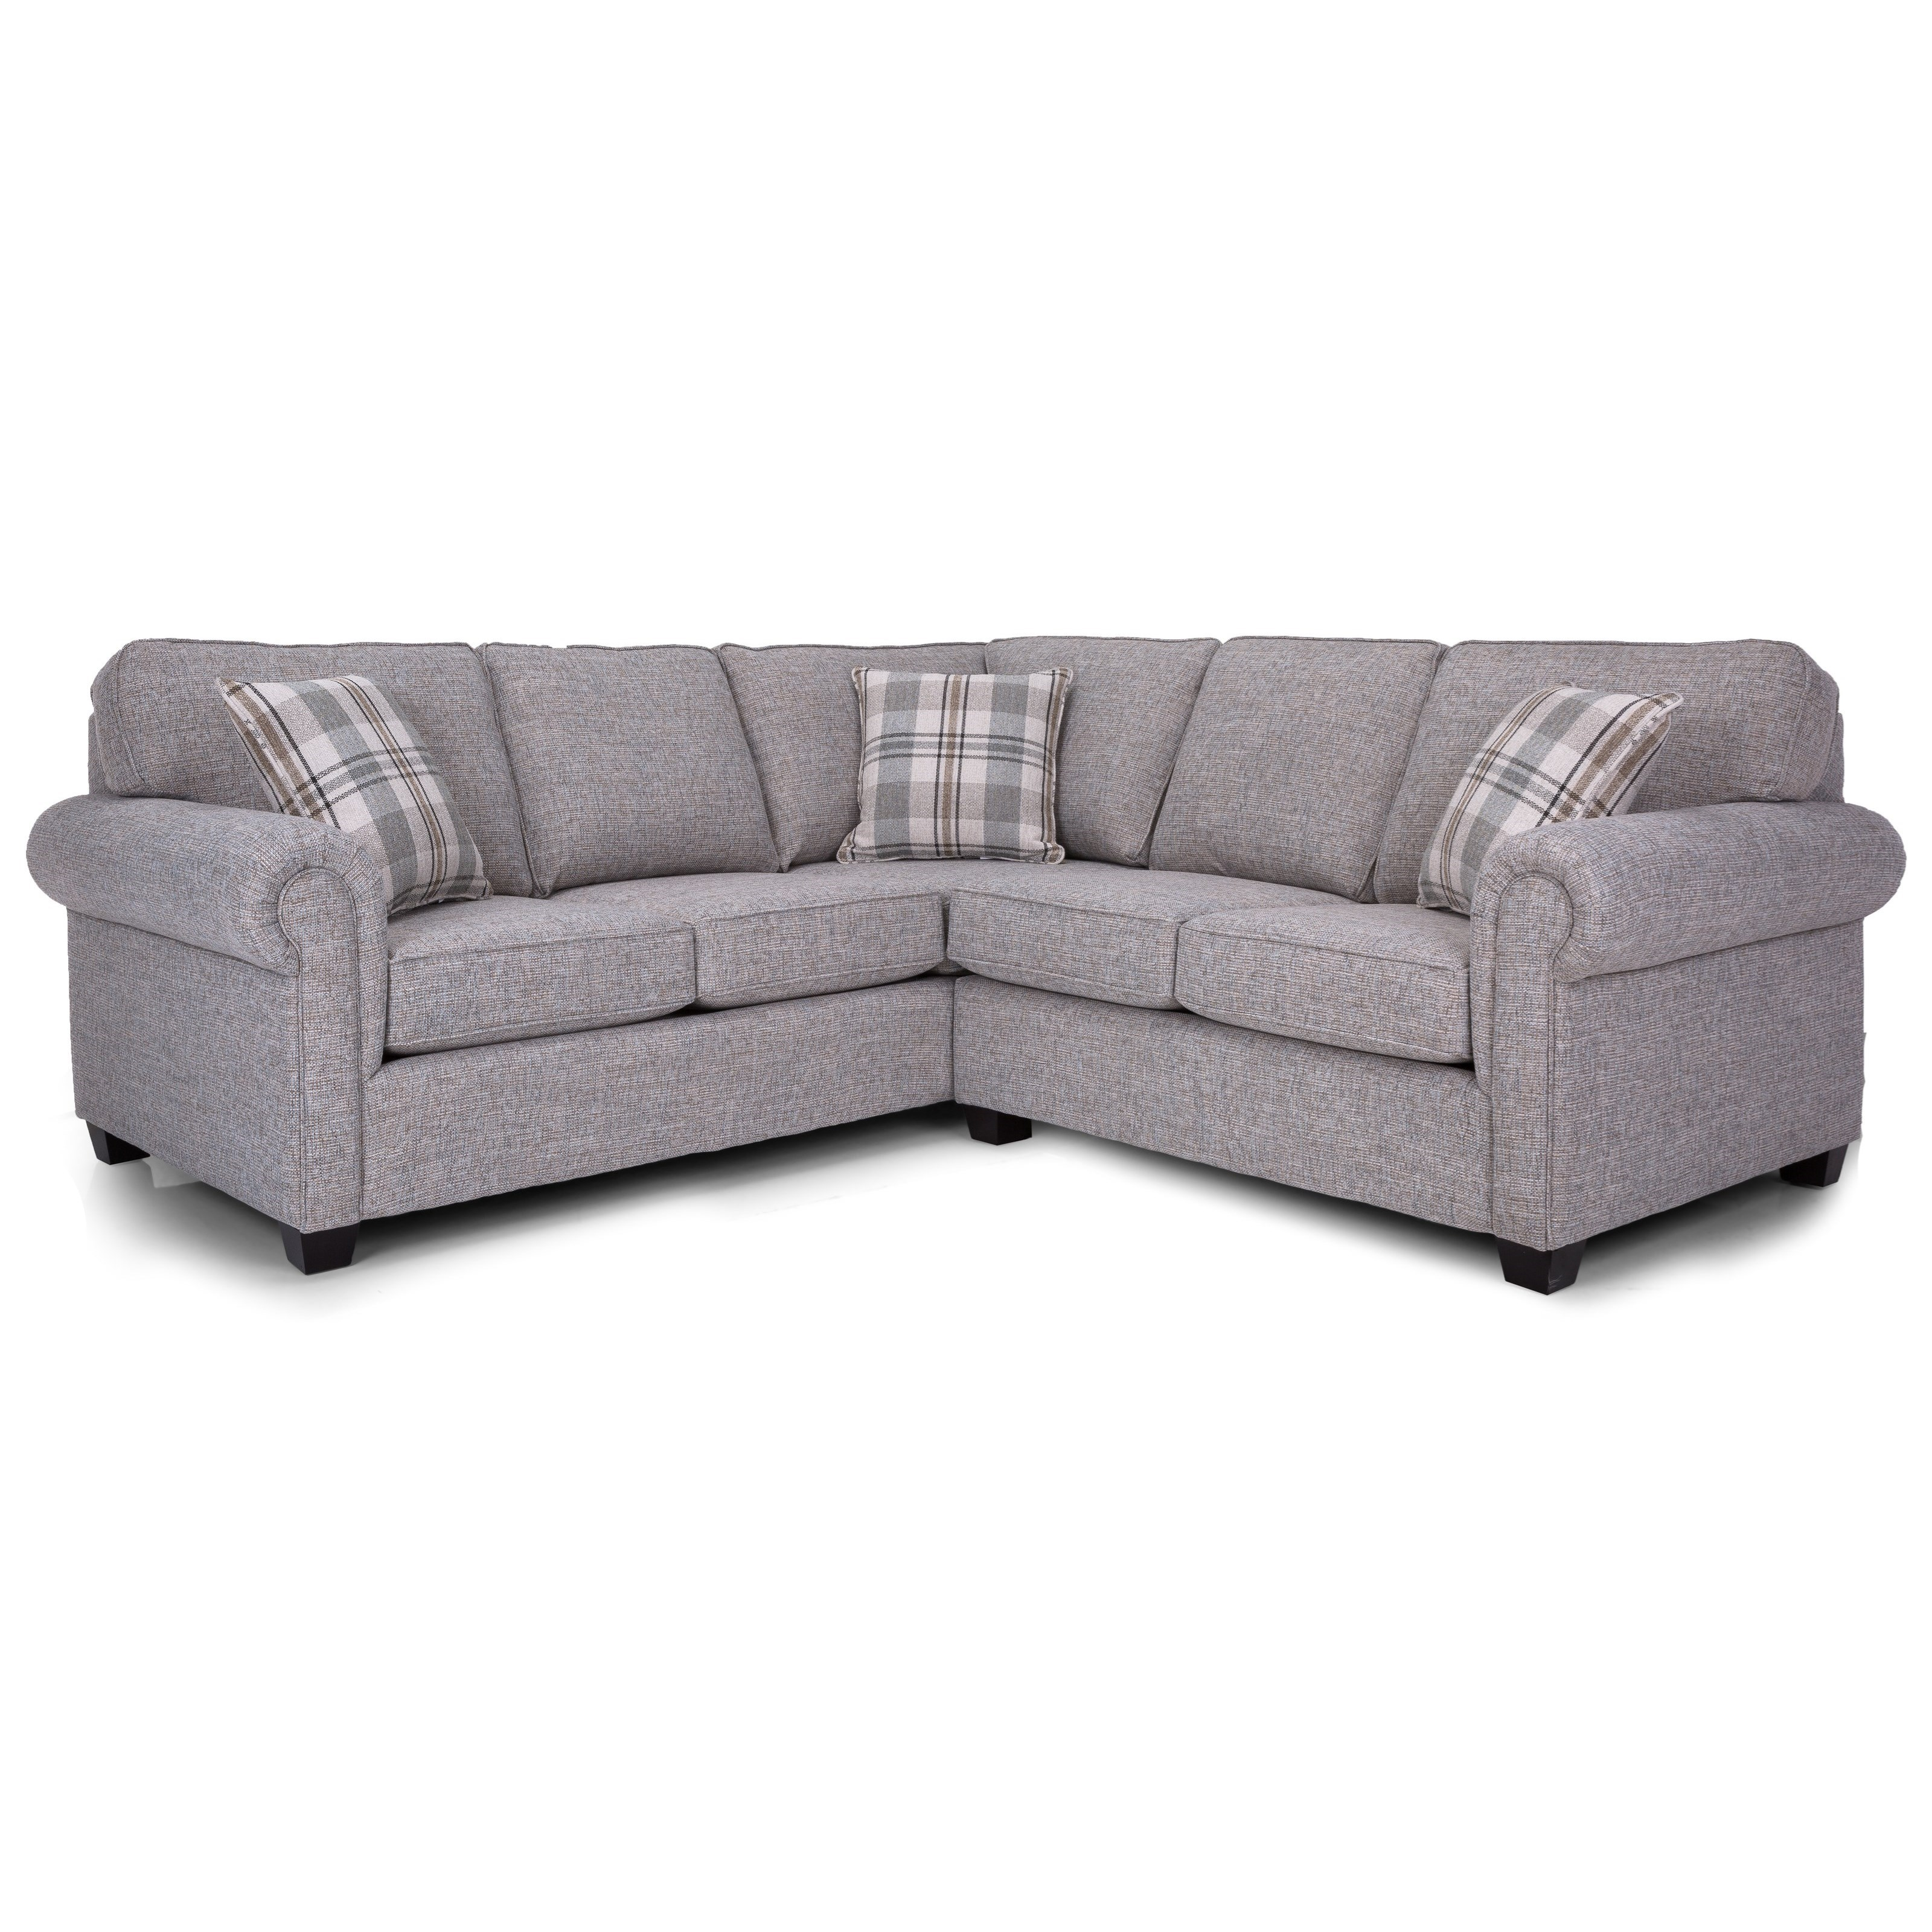 2006 Sectional Series L-Shaped Sectional by Decor-Rest at Reid's Furniture